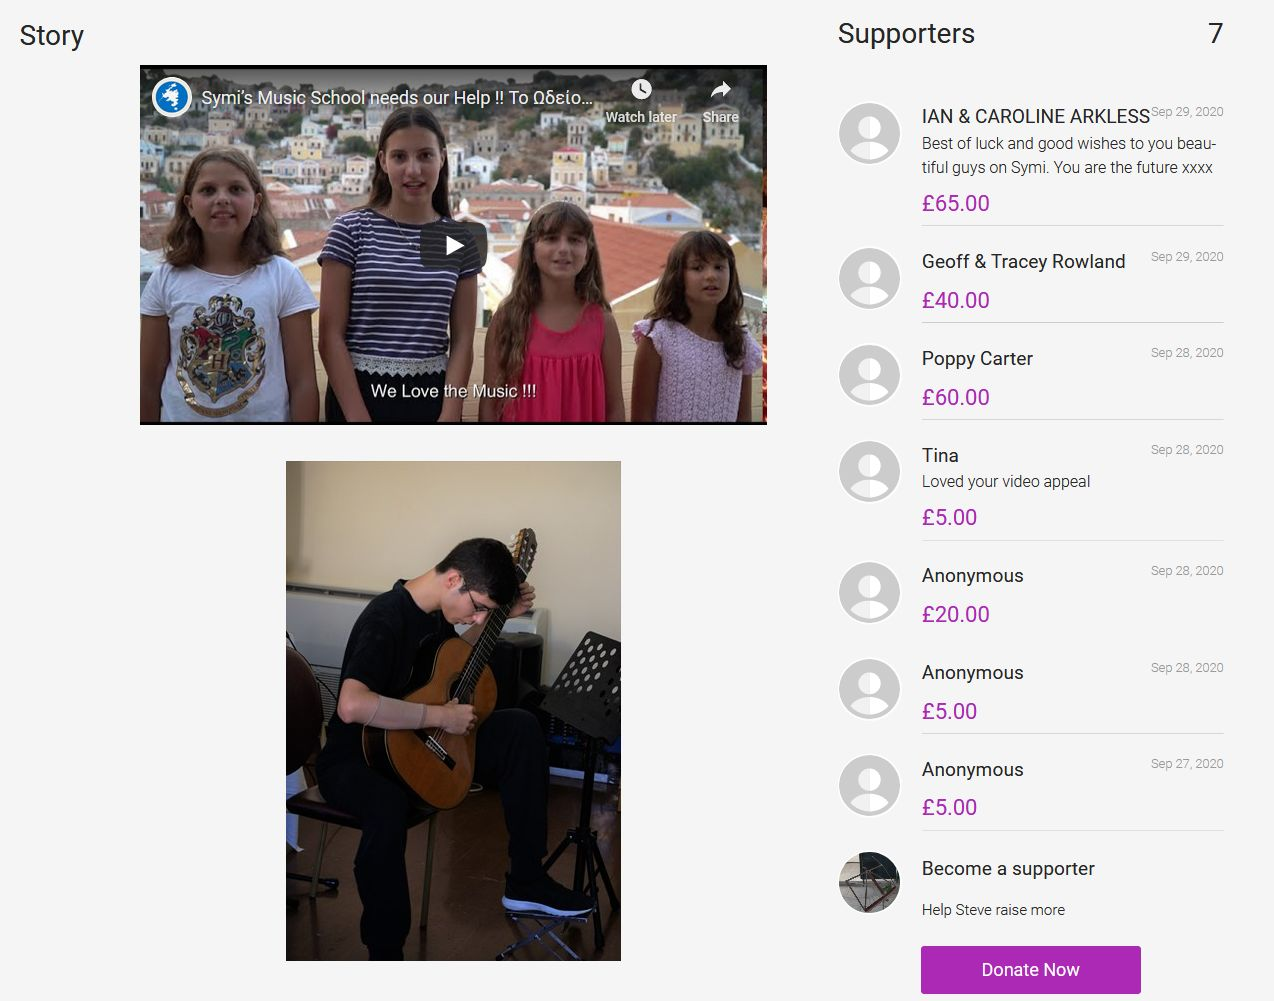 2Crowdfunding to Help fund Symi Music School on JustGiving' - www_justgiving_com